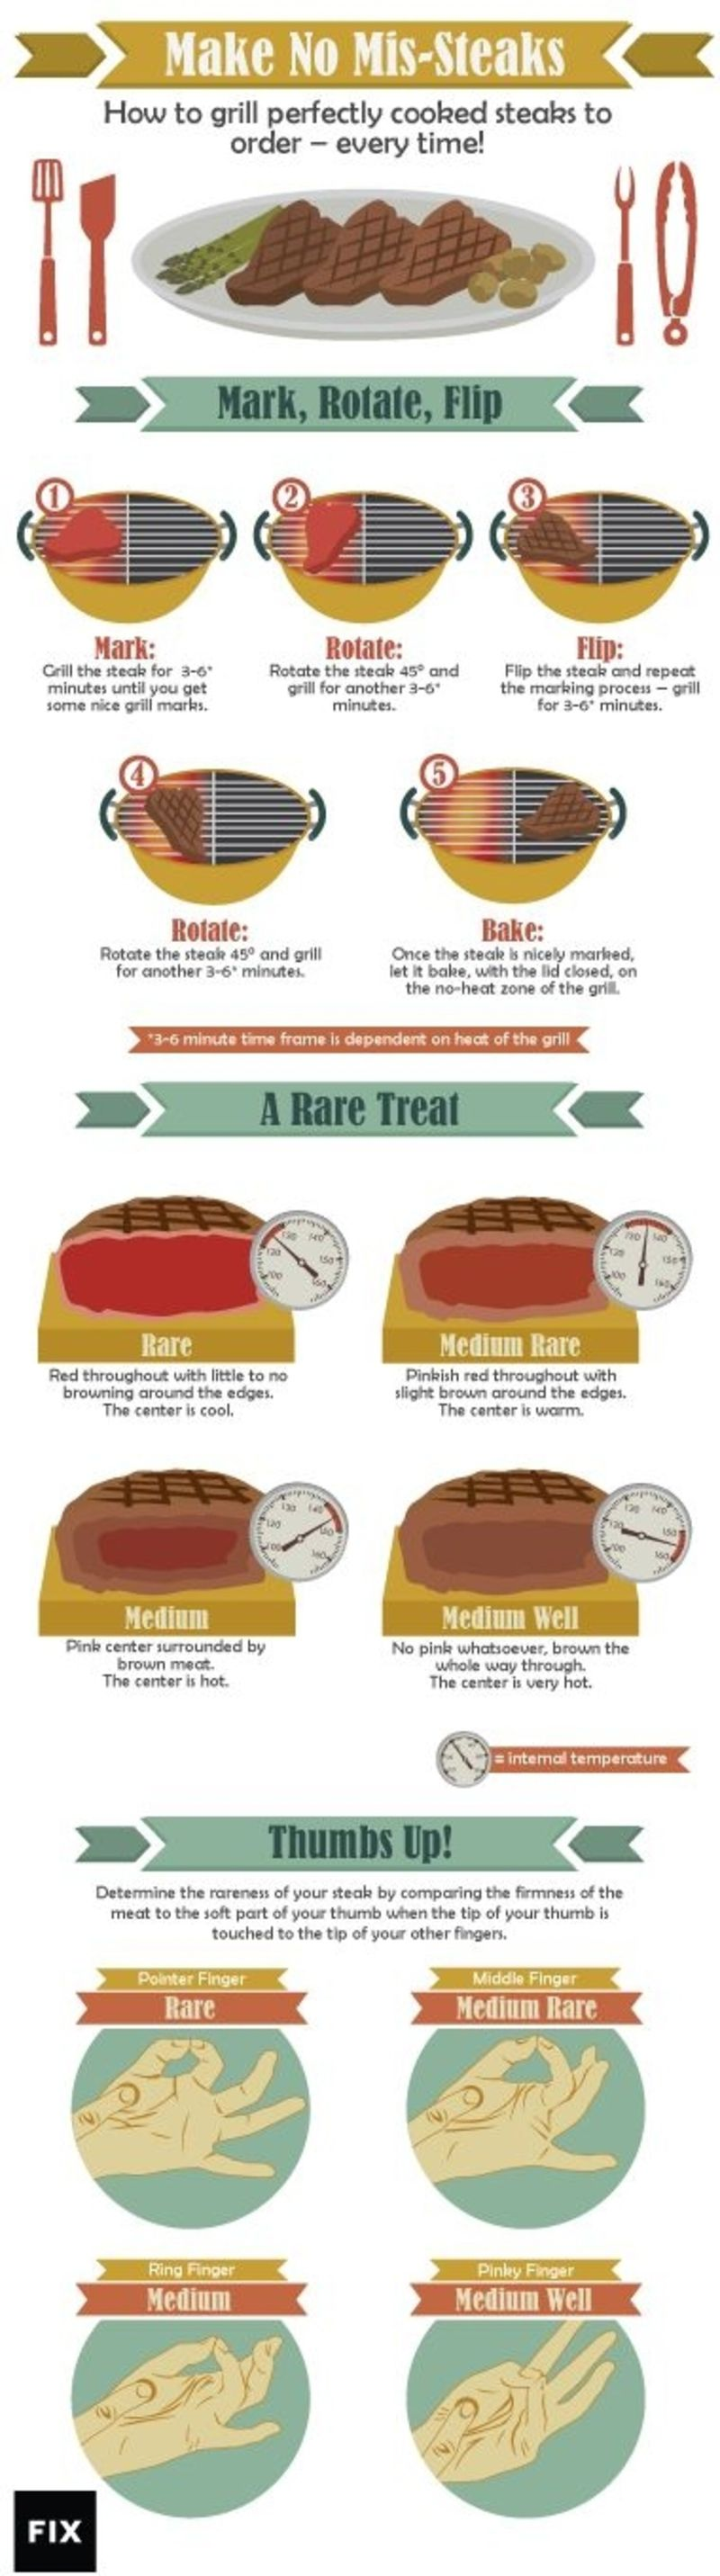 How To Grill Perfectly Cooked Steaks